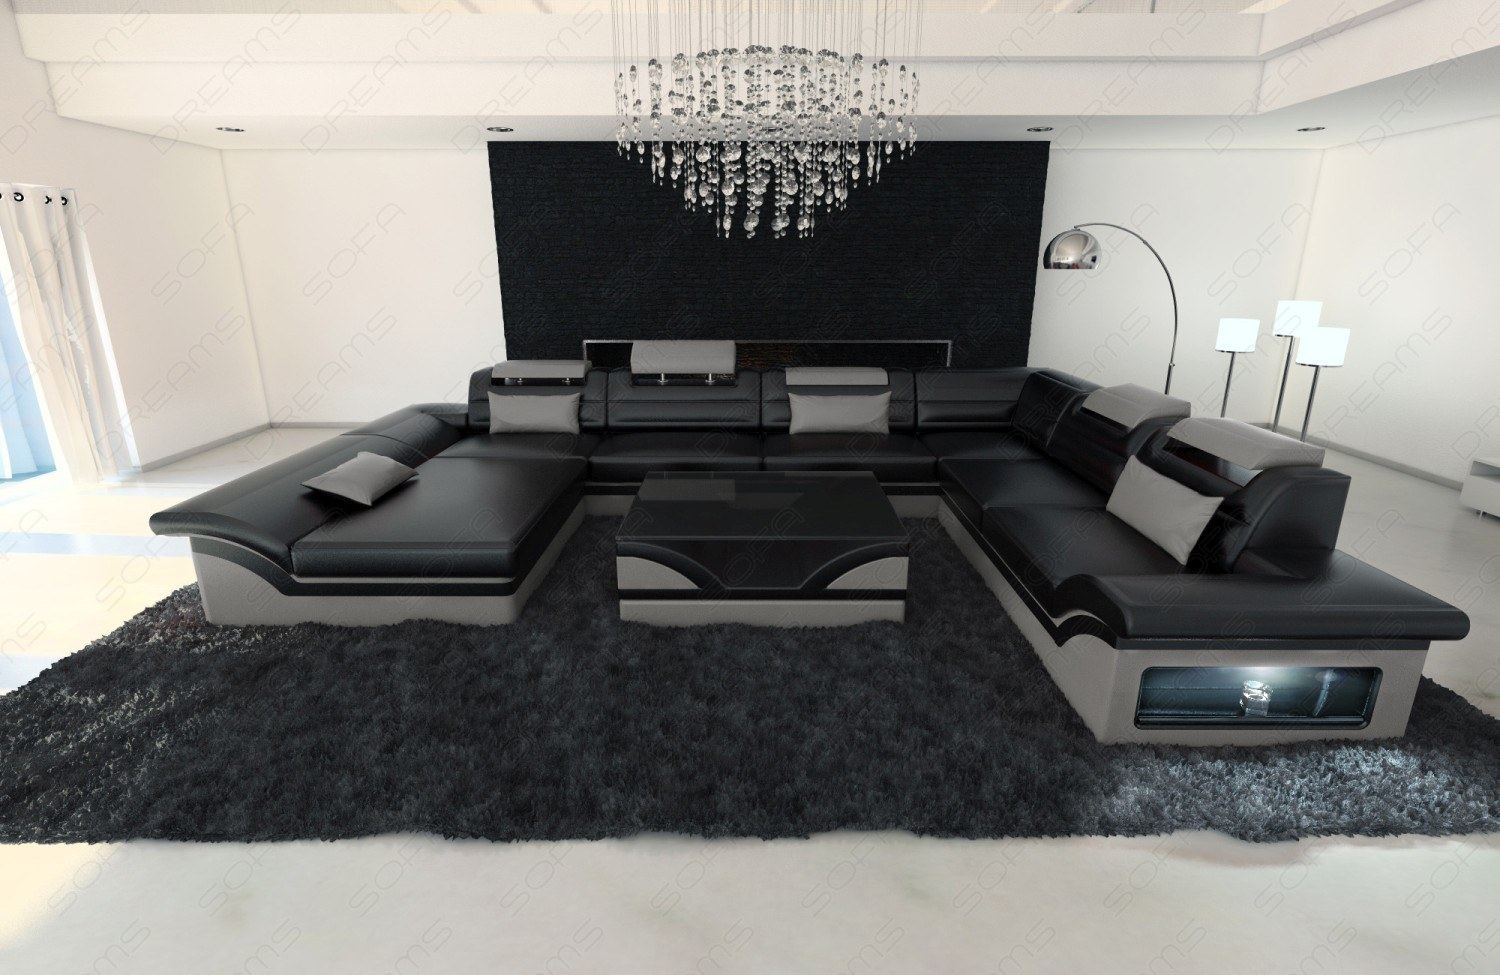 Sofa Grau Leder Big Sectional Leather Sofa Bellagio U With Led Lighting Big Sofa Leder Schwarz